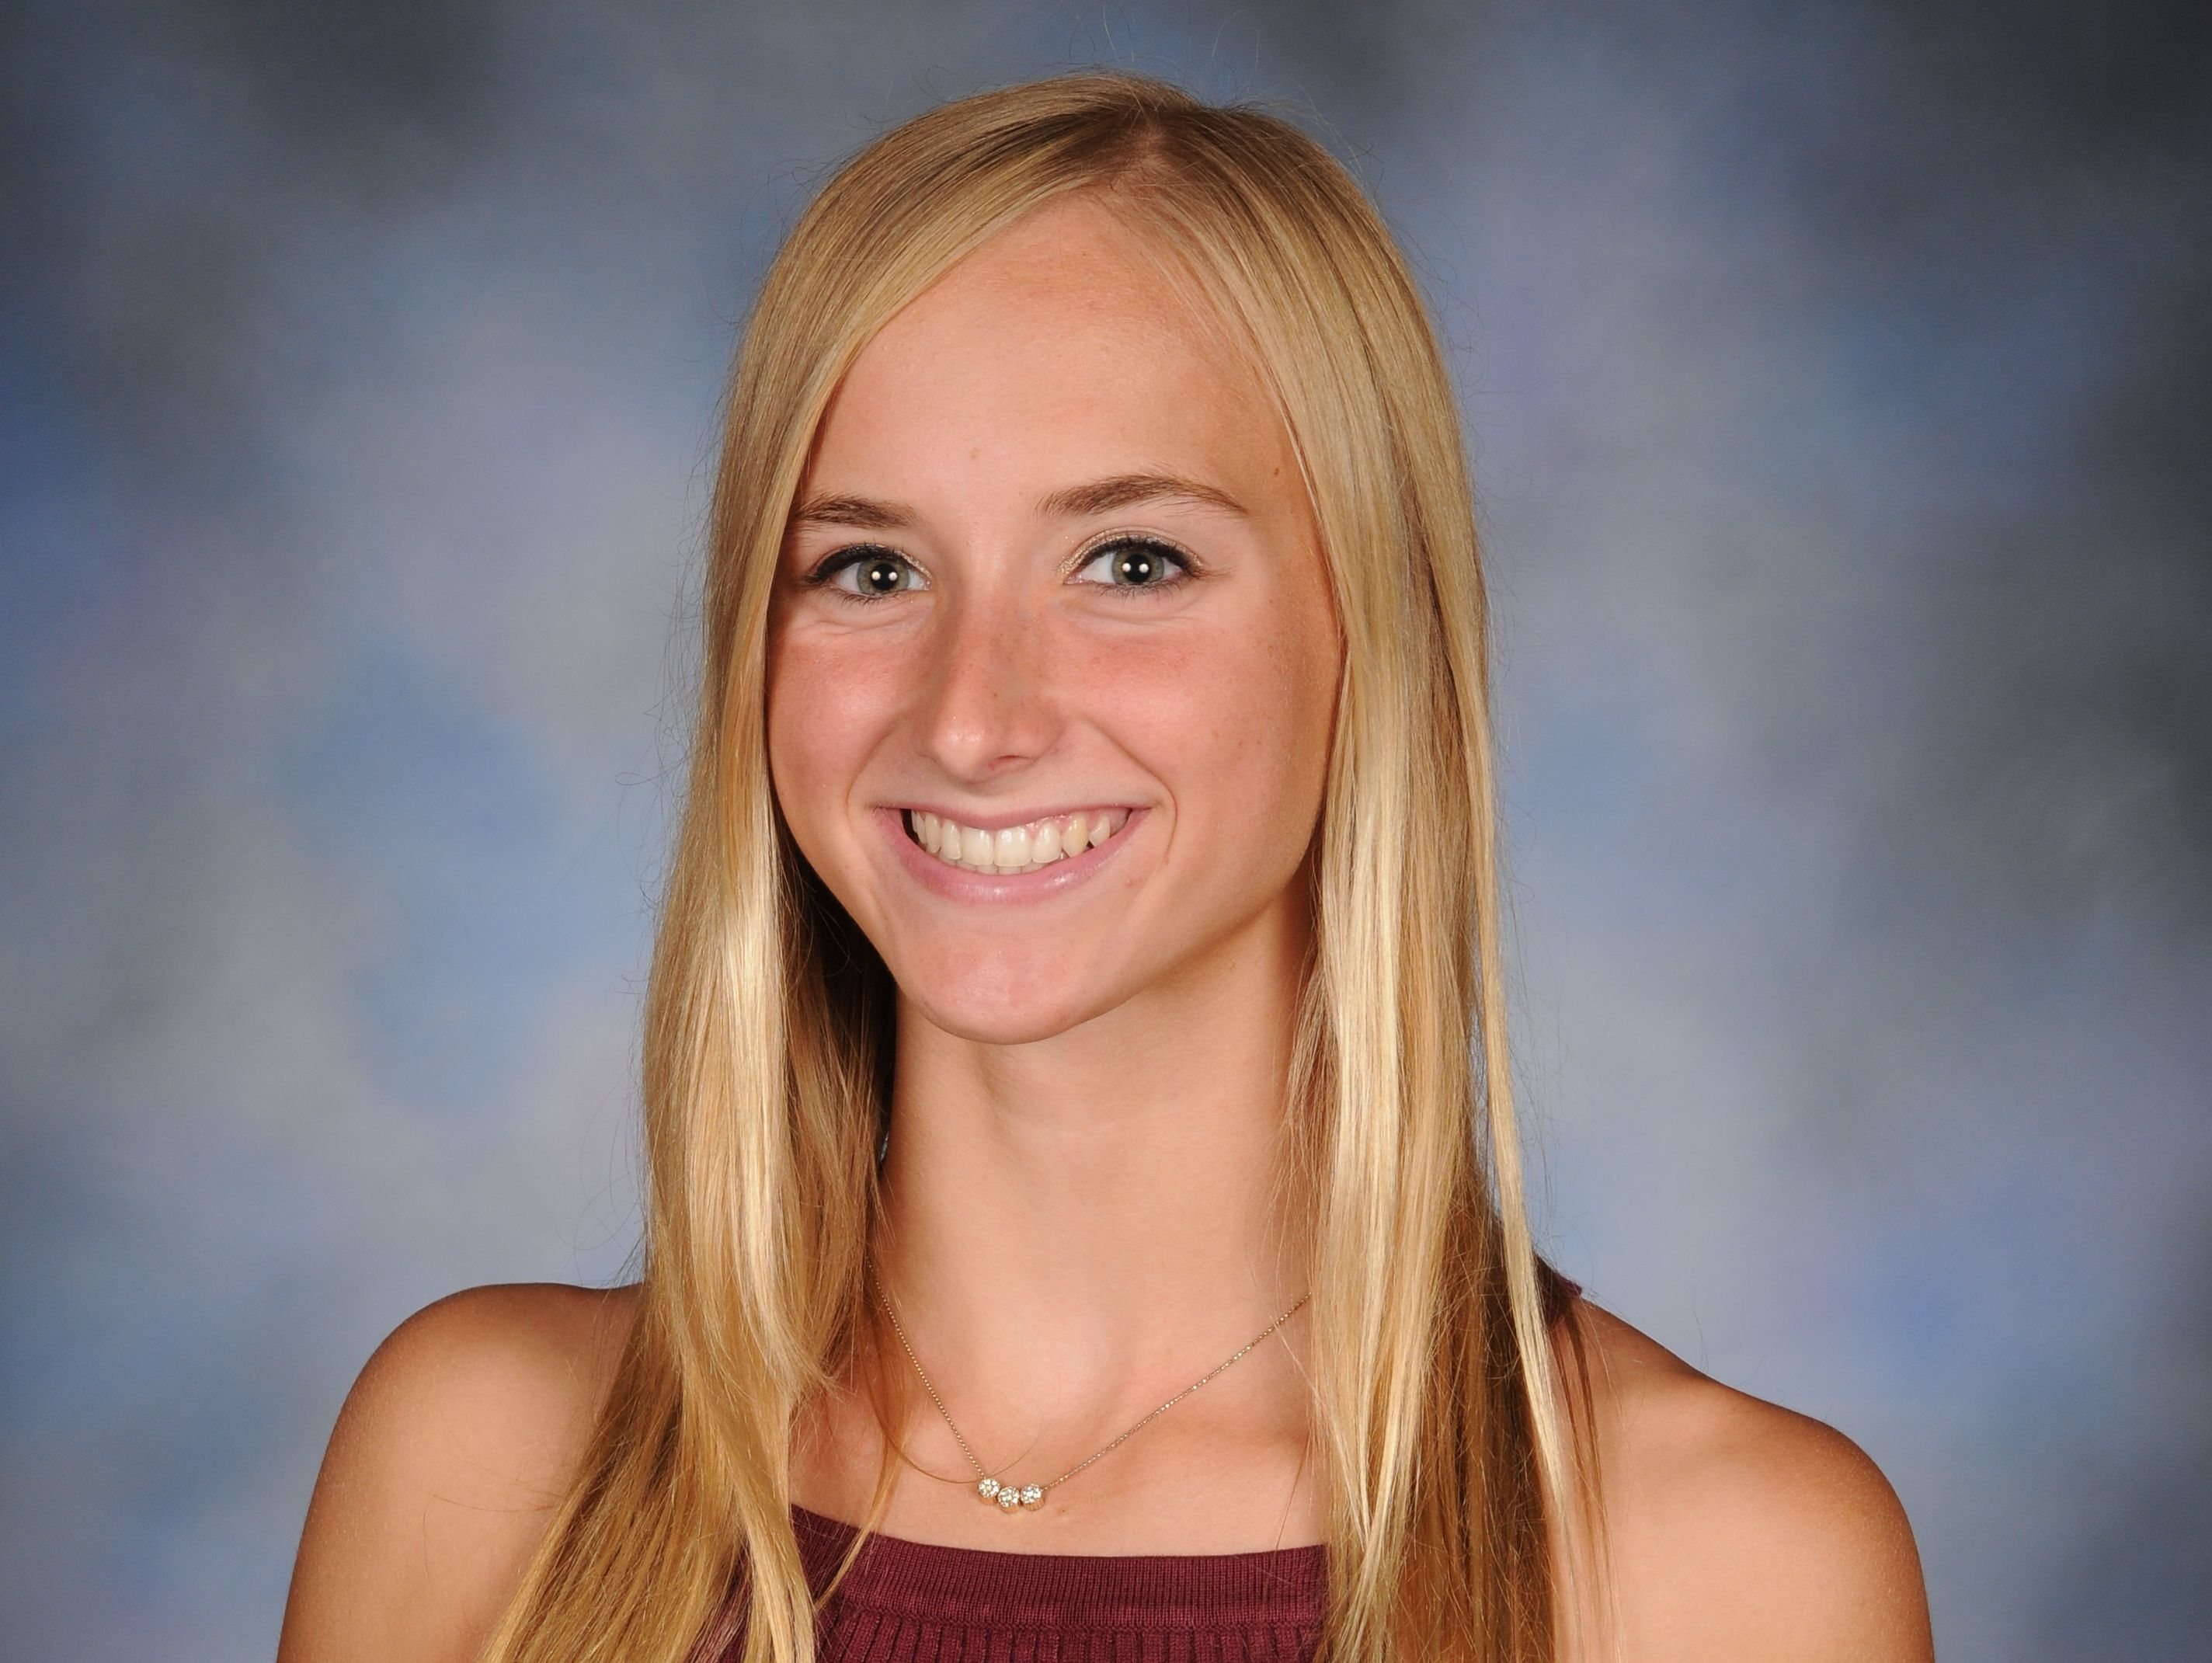 Gabriella Fagan, from Chaparral High School, is azcentral sports' Female Athlete of the Week.